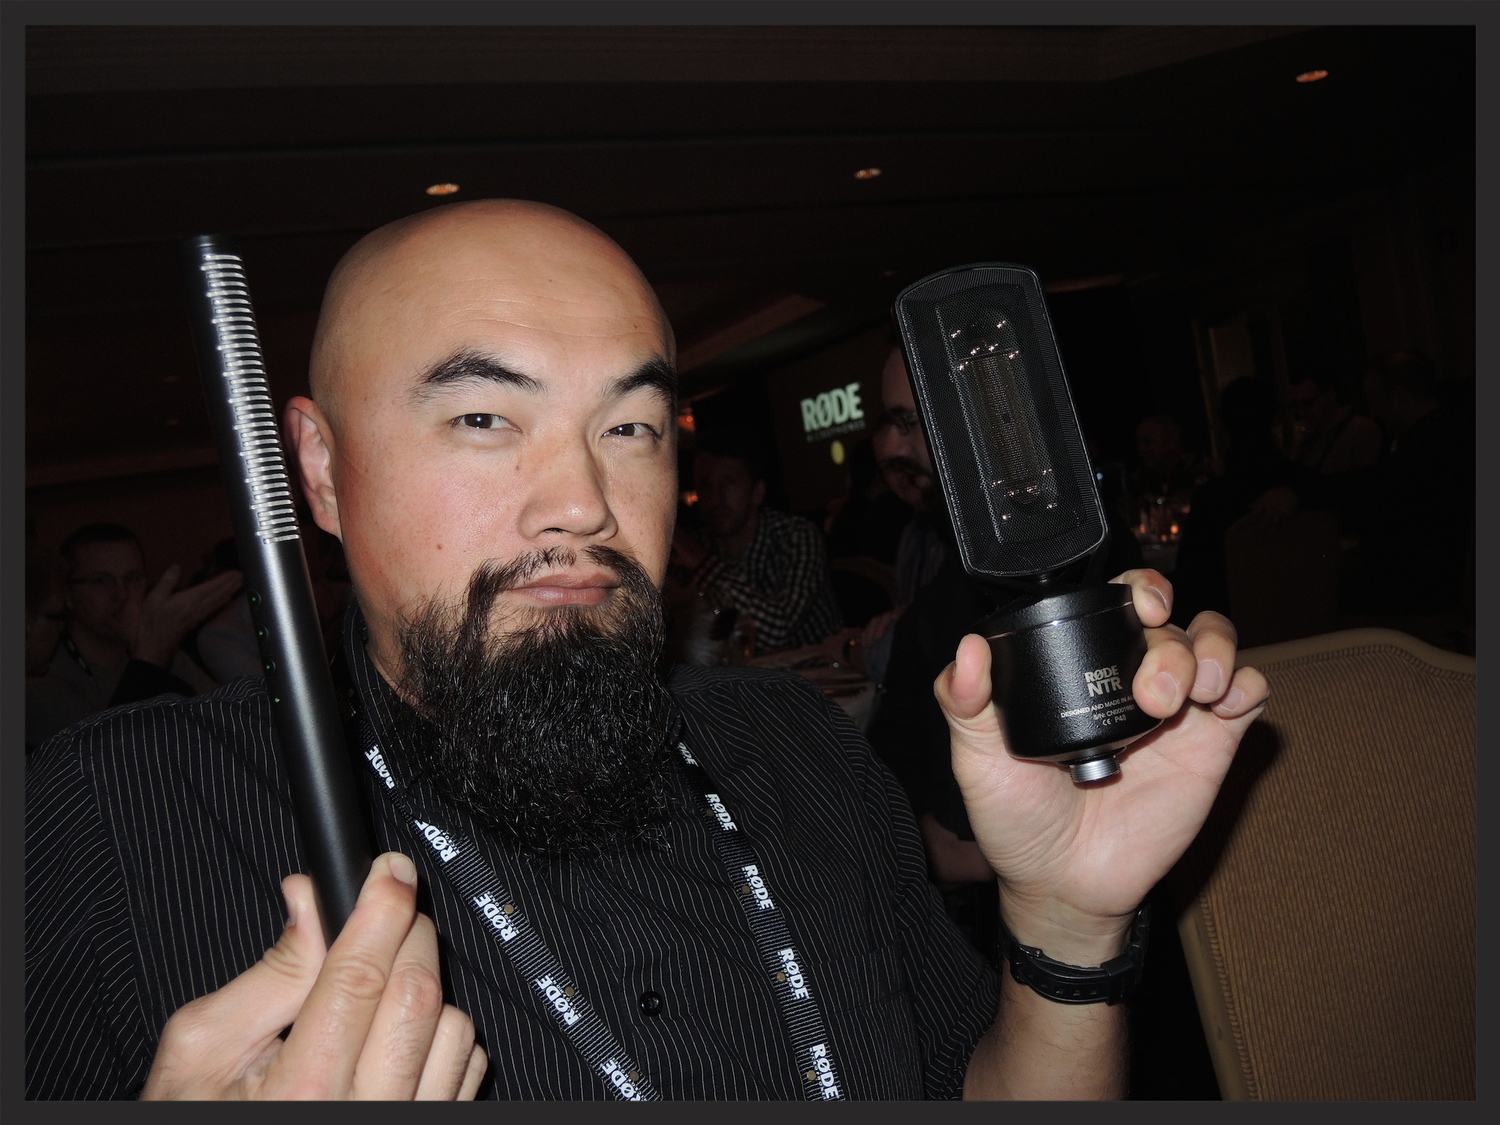 Watson Wu holding the new   NTG4+ shotgun   and   NTR ribbon   mics at the Røde Show 2015. Røde must have read my mind because I've been thinking about getting a ribbon mic! :-D